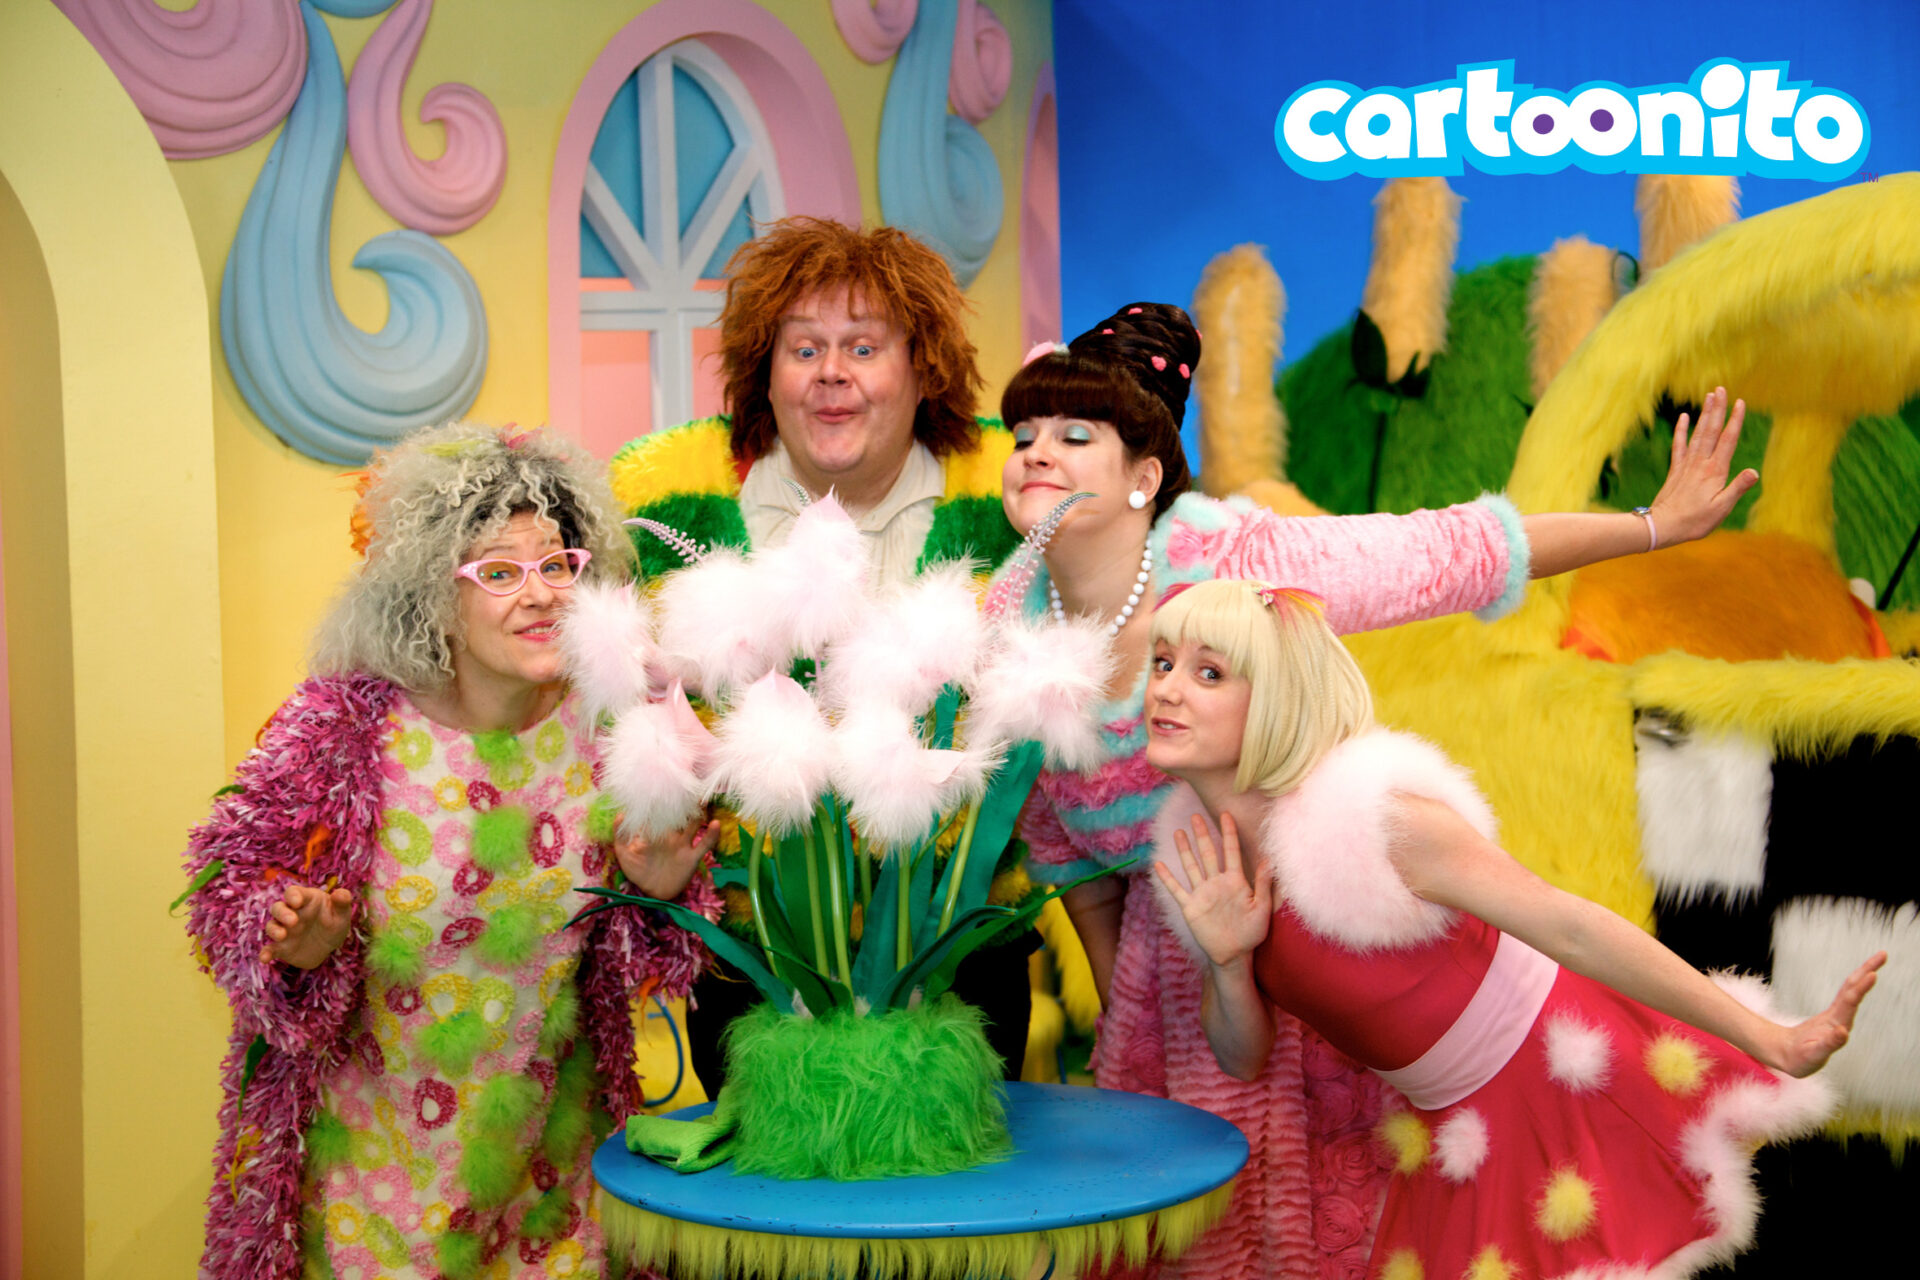 HA! HA! HAIRIES: Slapstick Comedy per bambini in Prima TV su Cartoonito da 4/6 | Digitale terrestre: Dtti.it